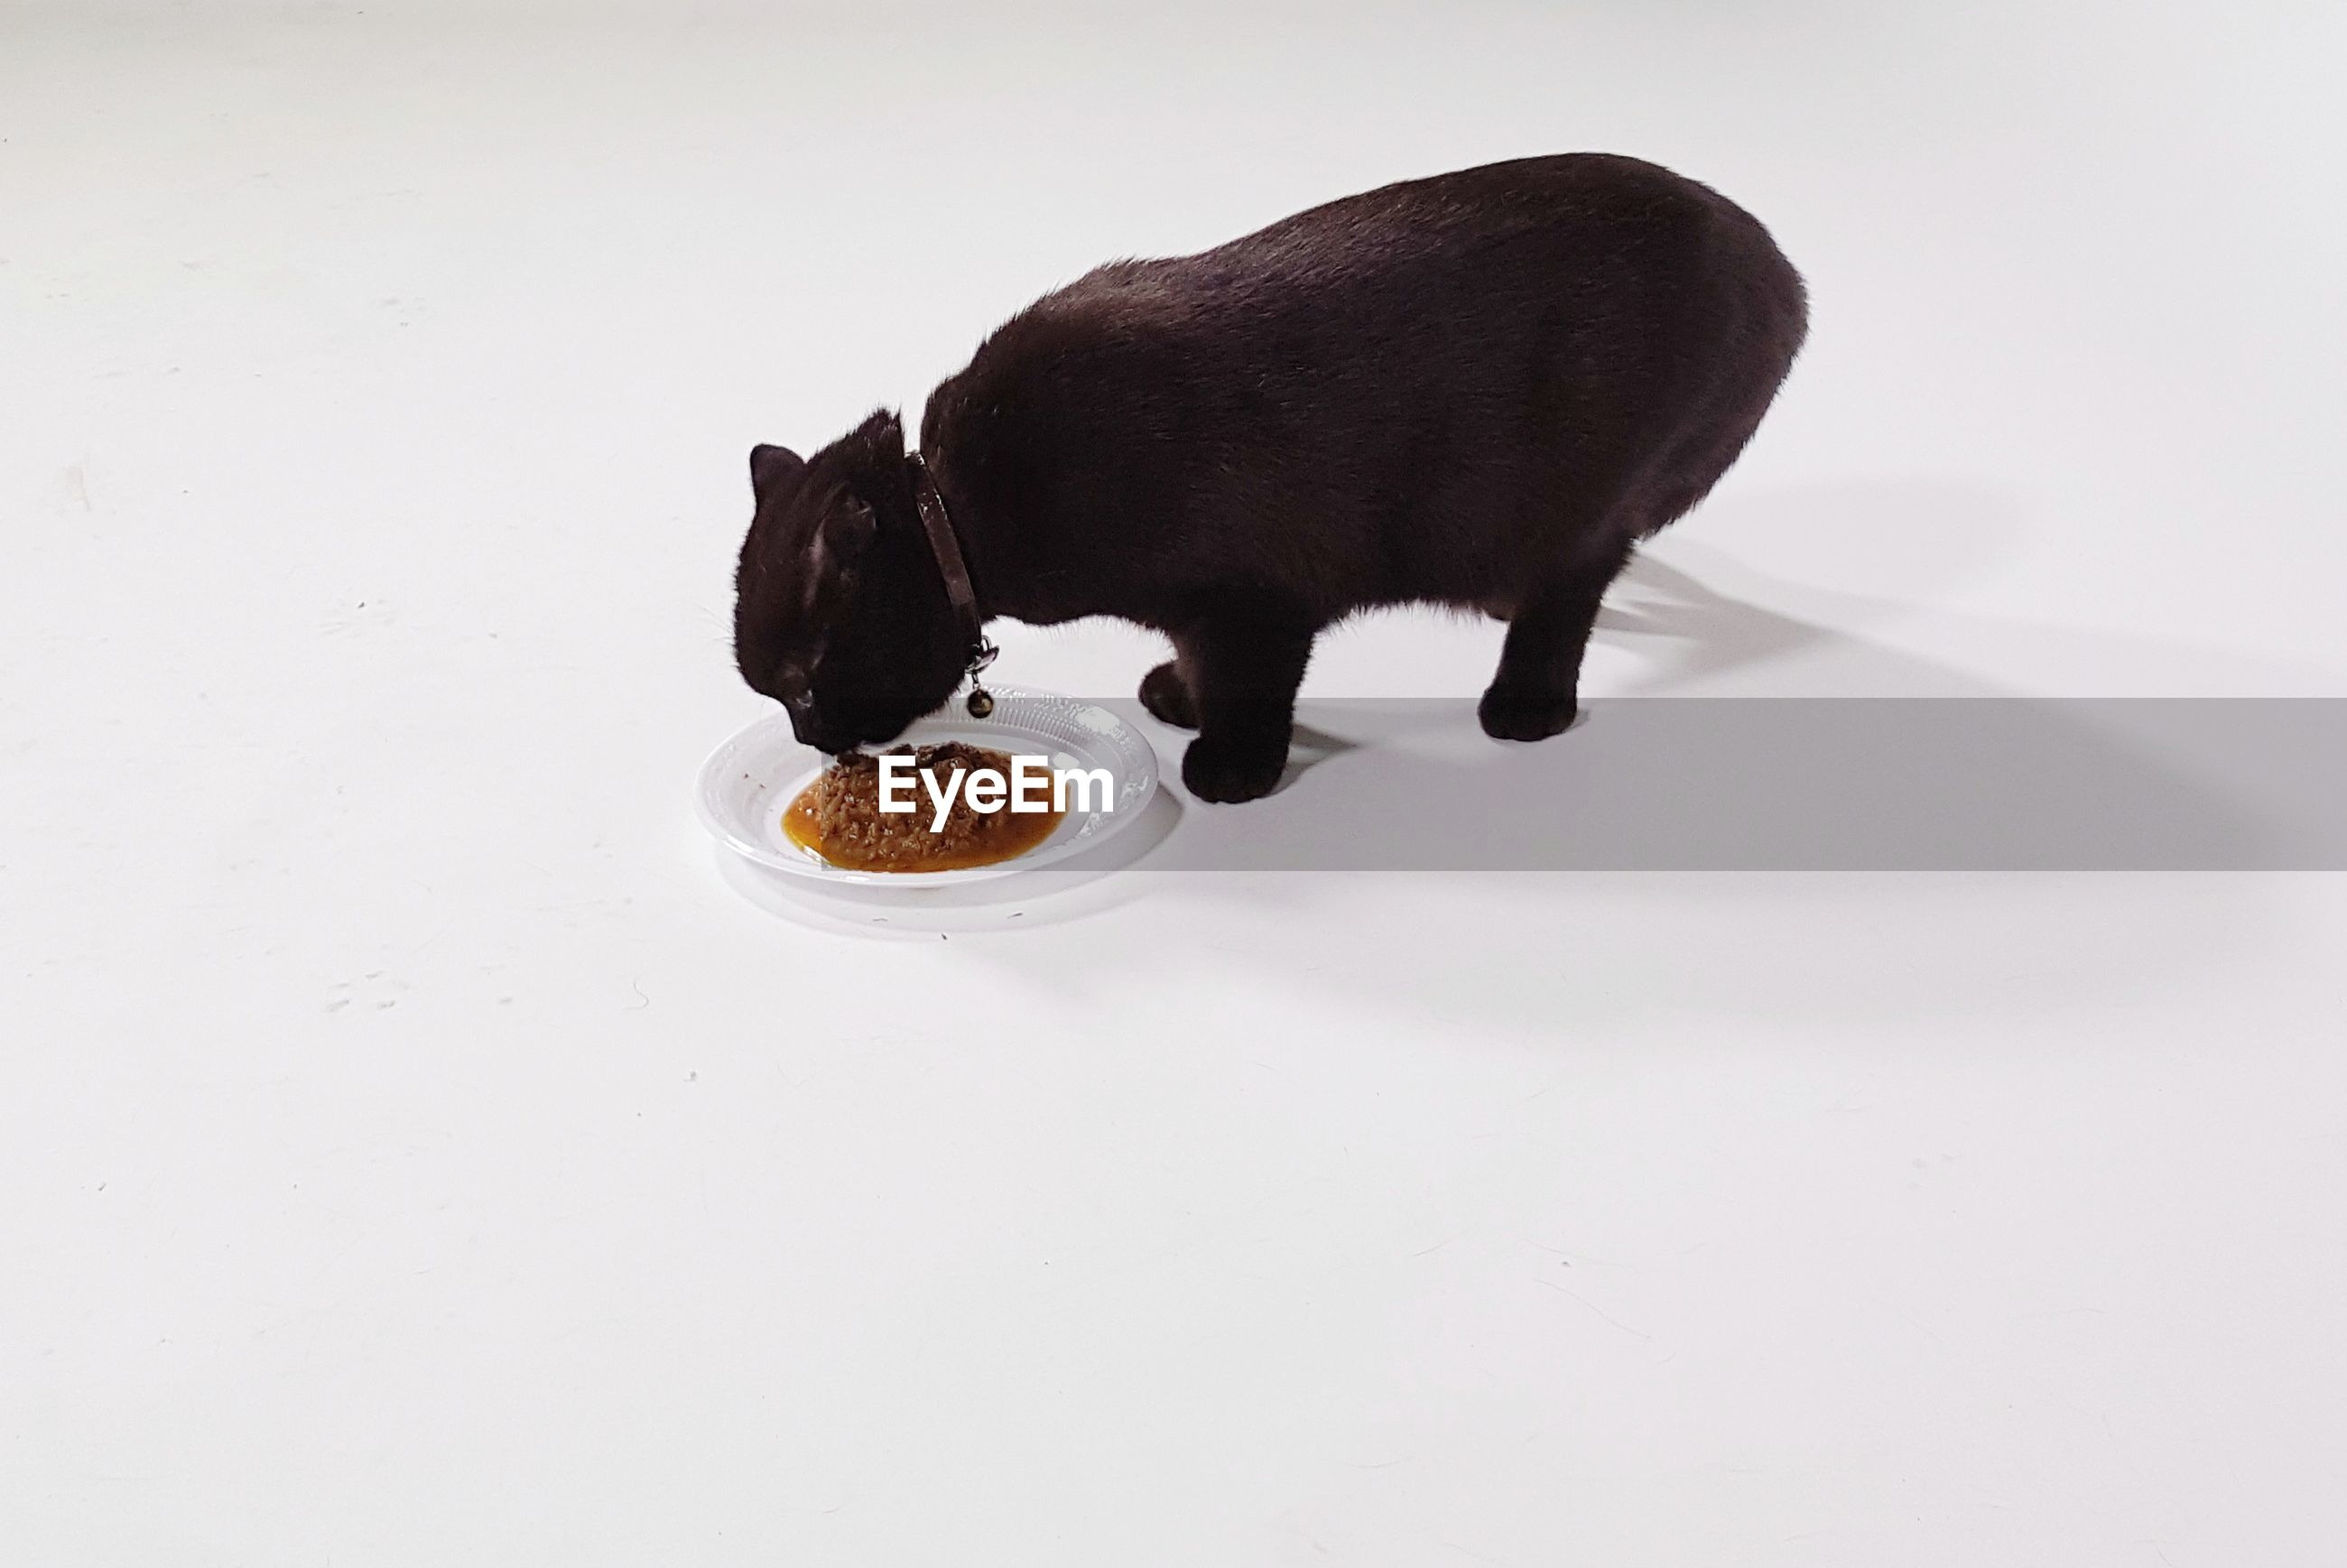 Black cat eating food over white background